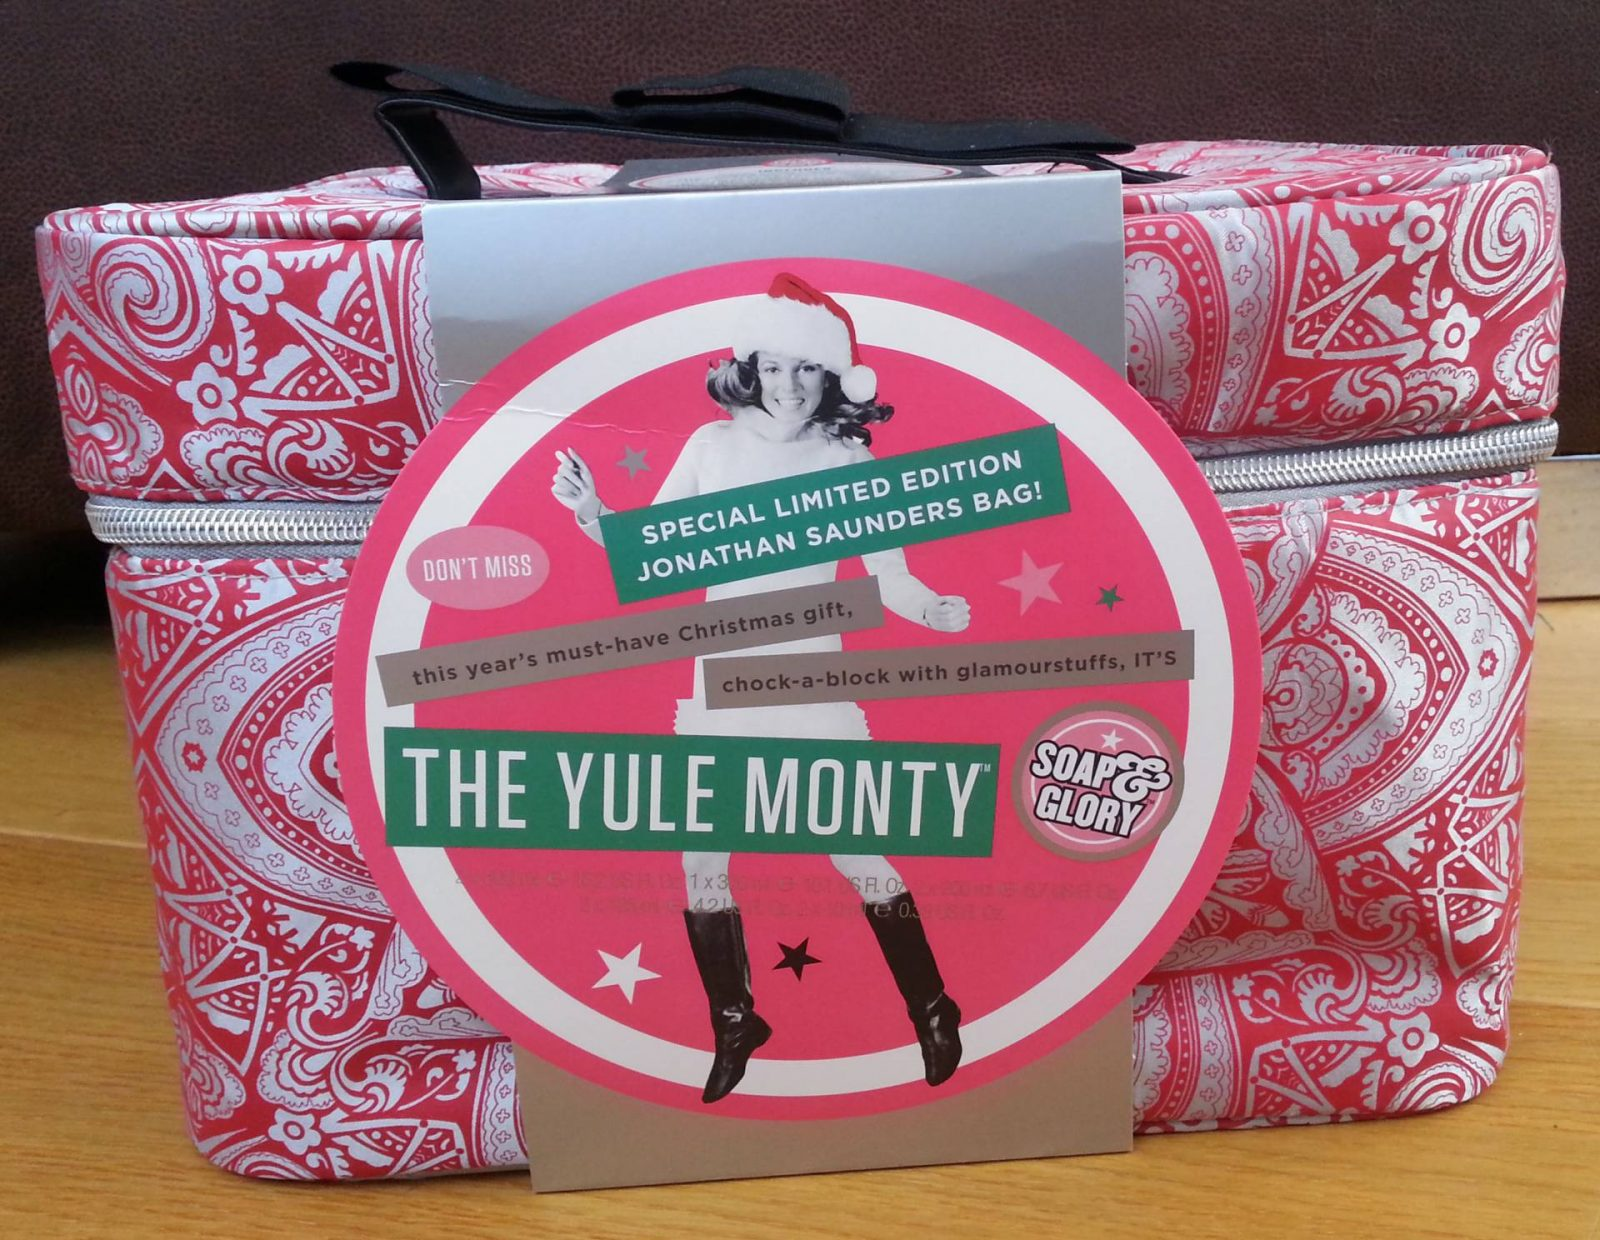 Soap and Glory The Yule Monty Gift Set